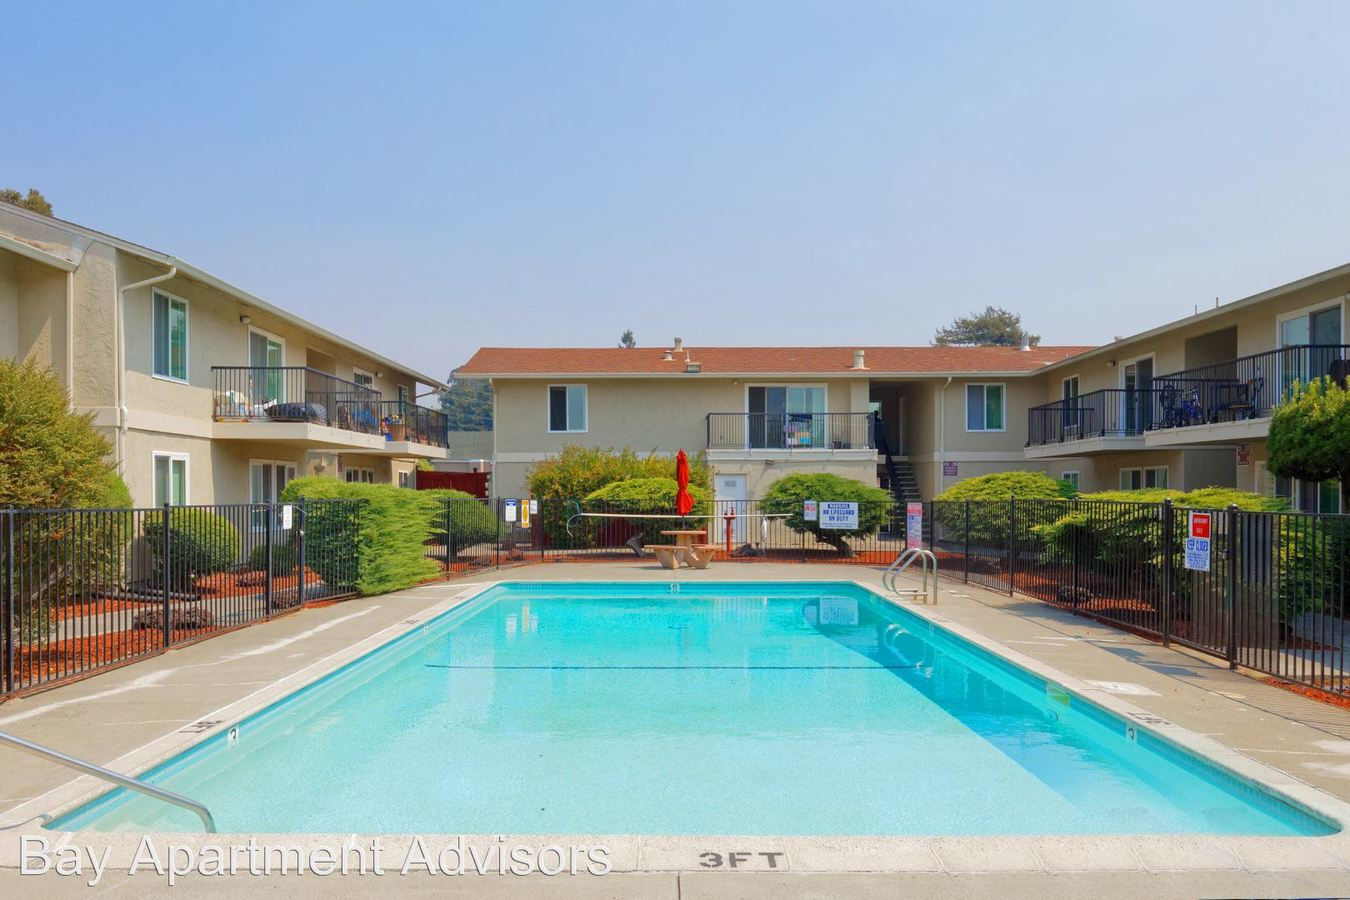 2 Bedrooms 1 Bathroom Apartment for rent at 4350 San Pablo Dam Rd in El Sobrante, CA